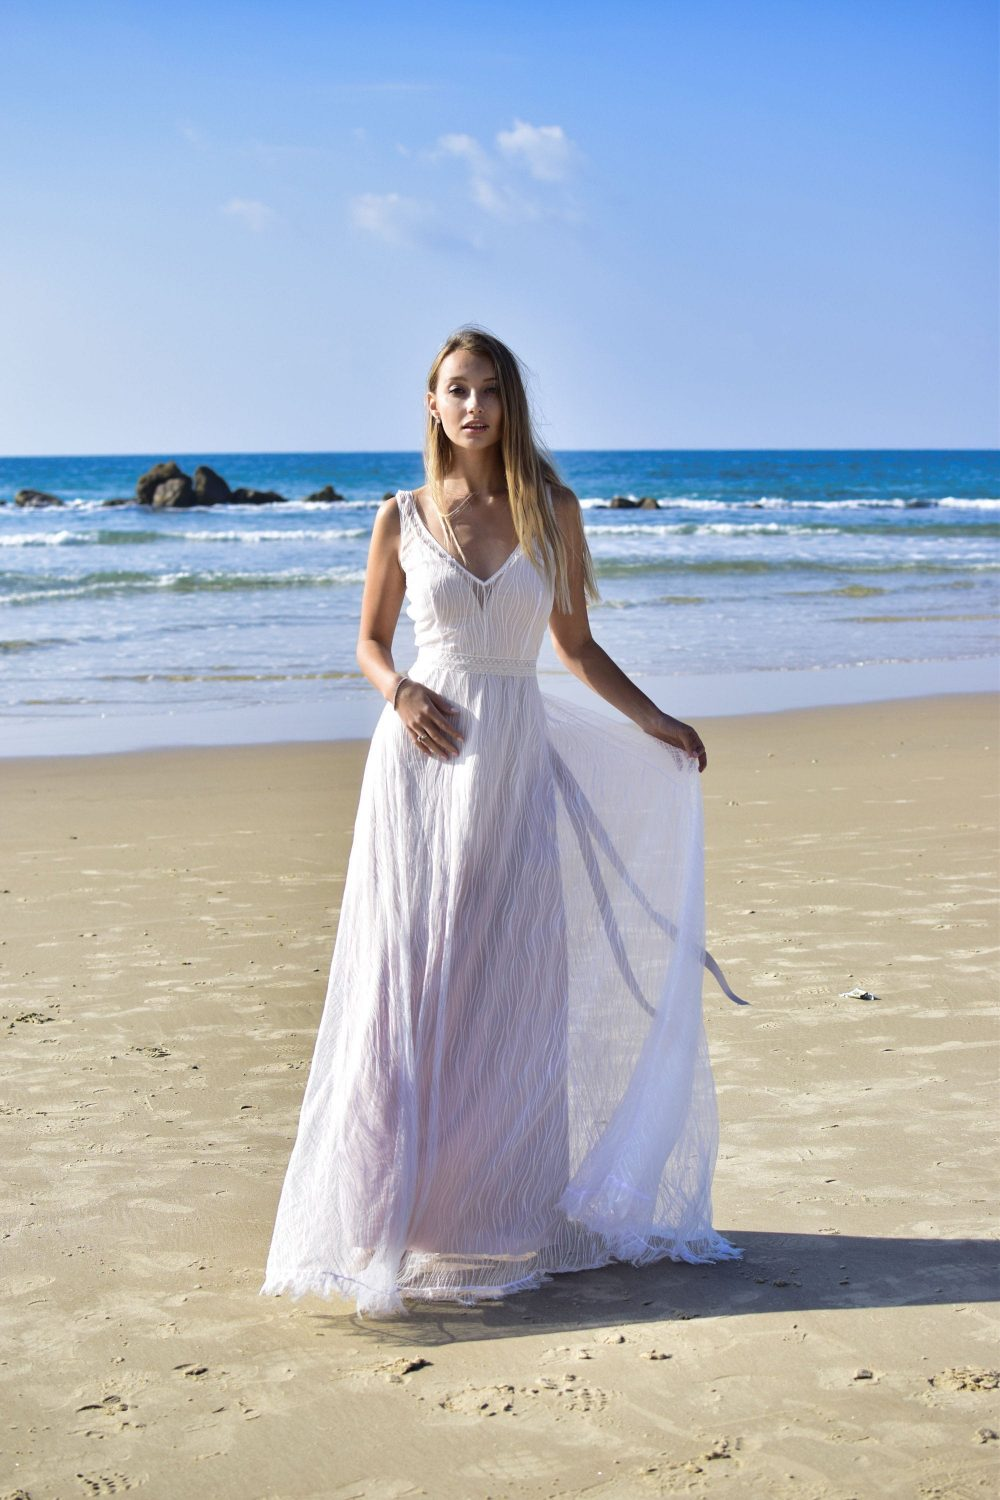 Lace Wedding Dress Chiffon Dresses Boho Bohemian Vintage Gown, Beach Casual Unique Bridal Hippie White Ivory Country Gowns